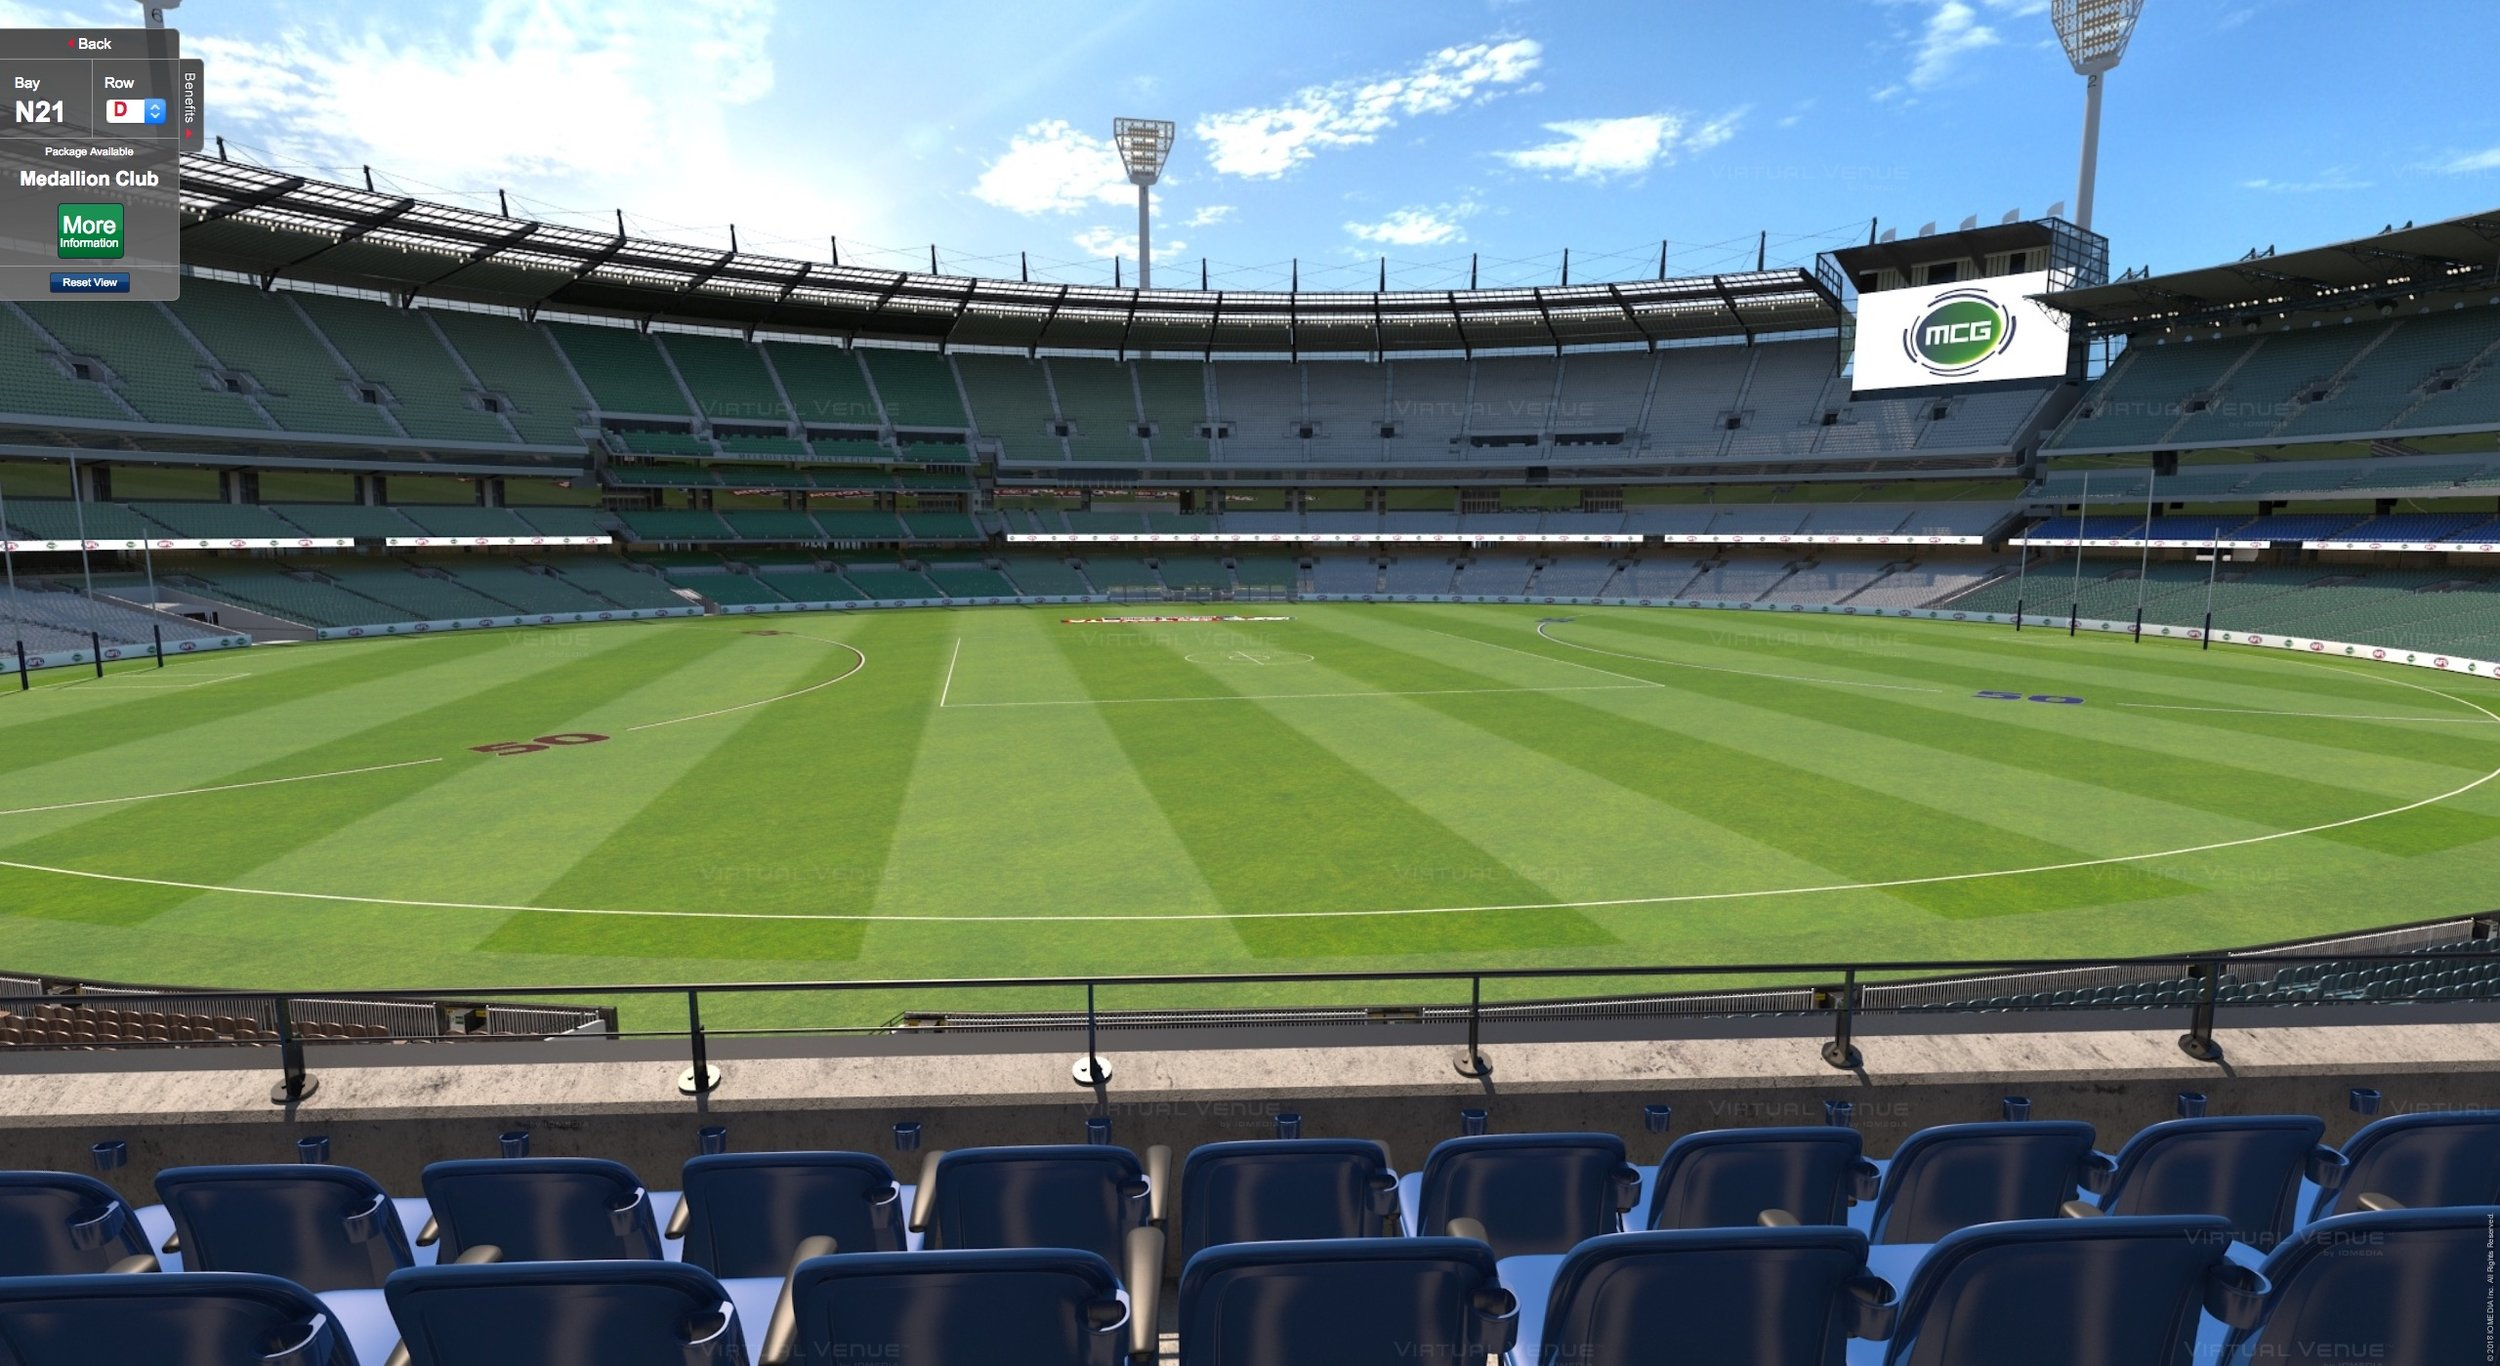 Richmond v Geelong MCG Medallion Club seating